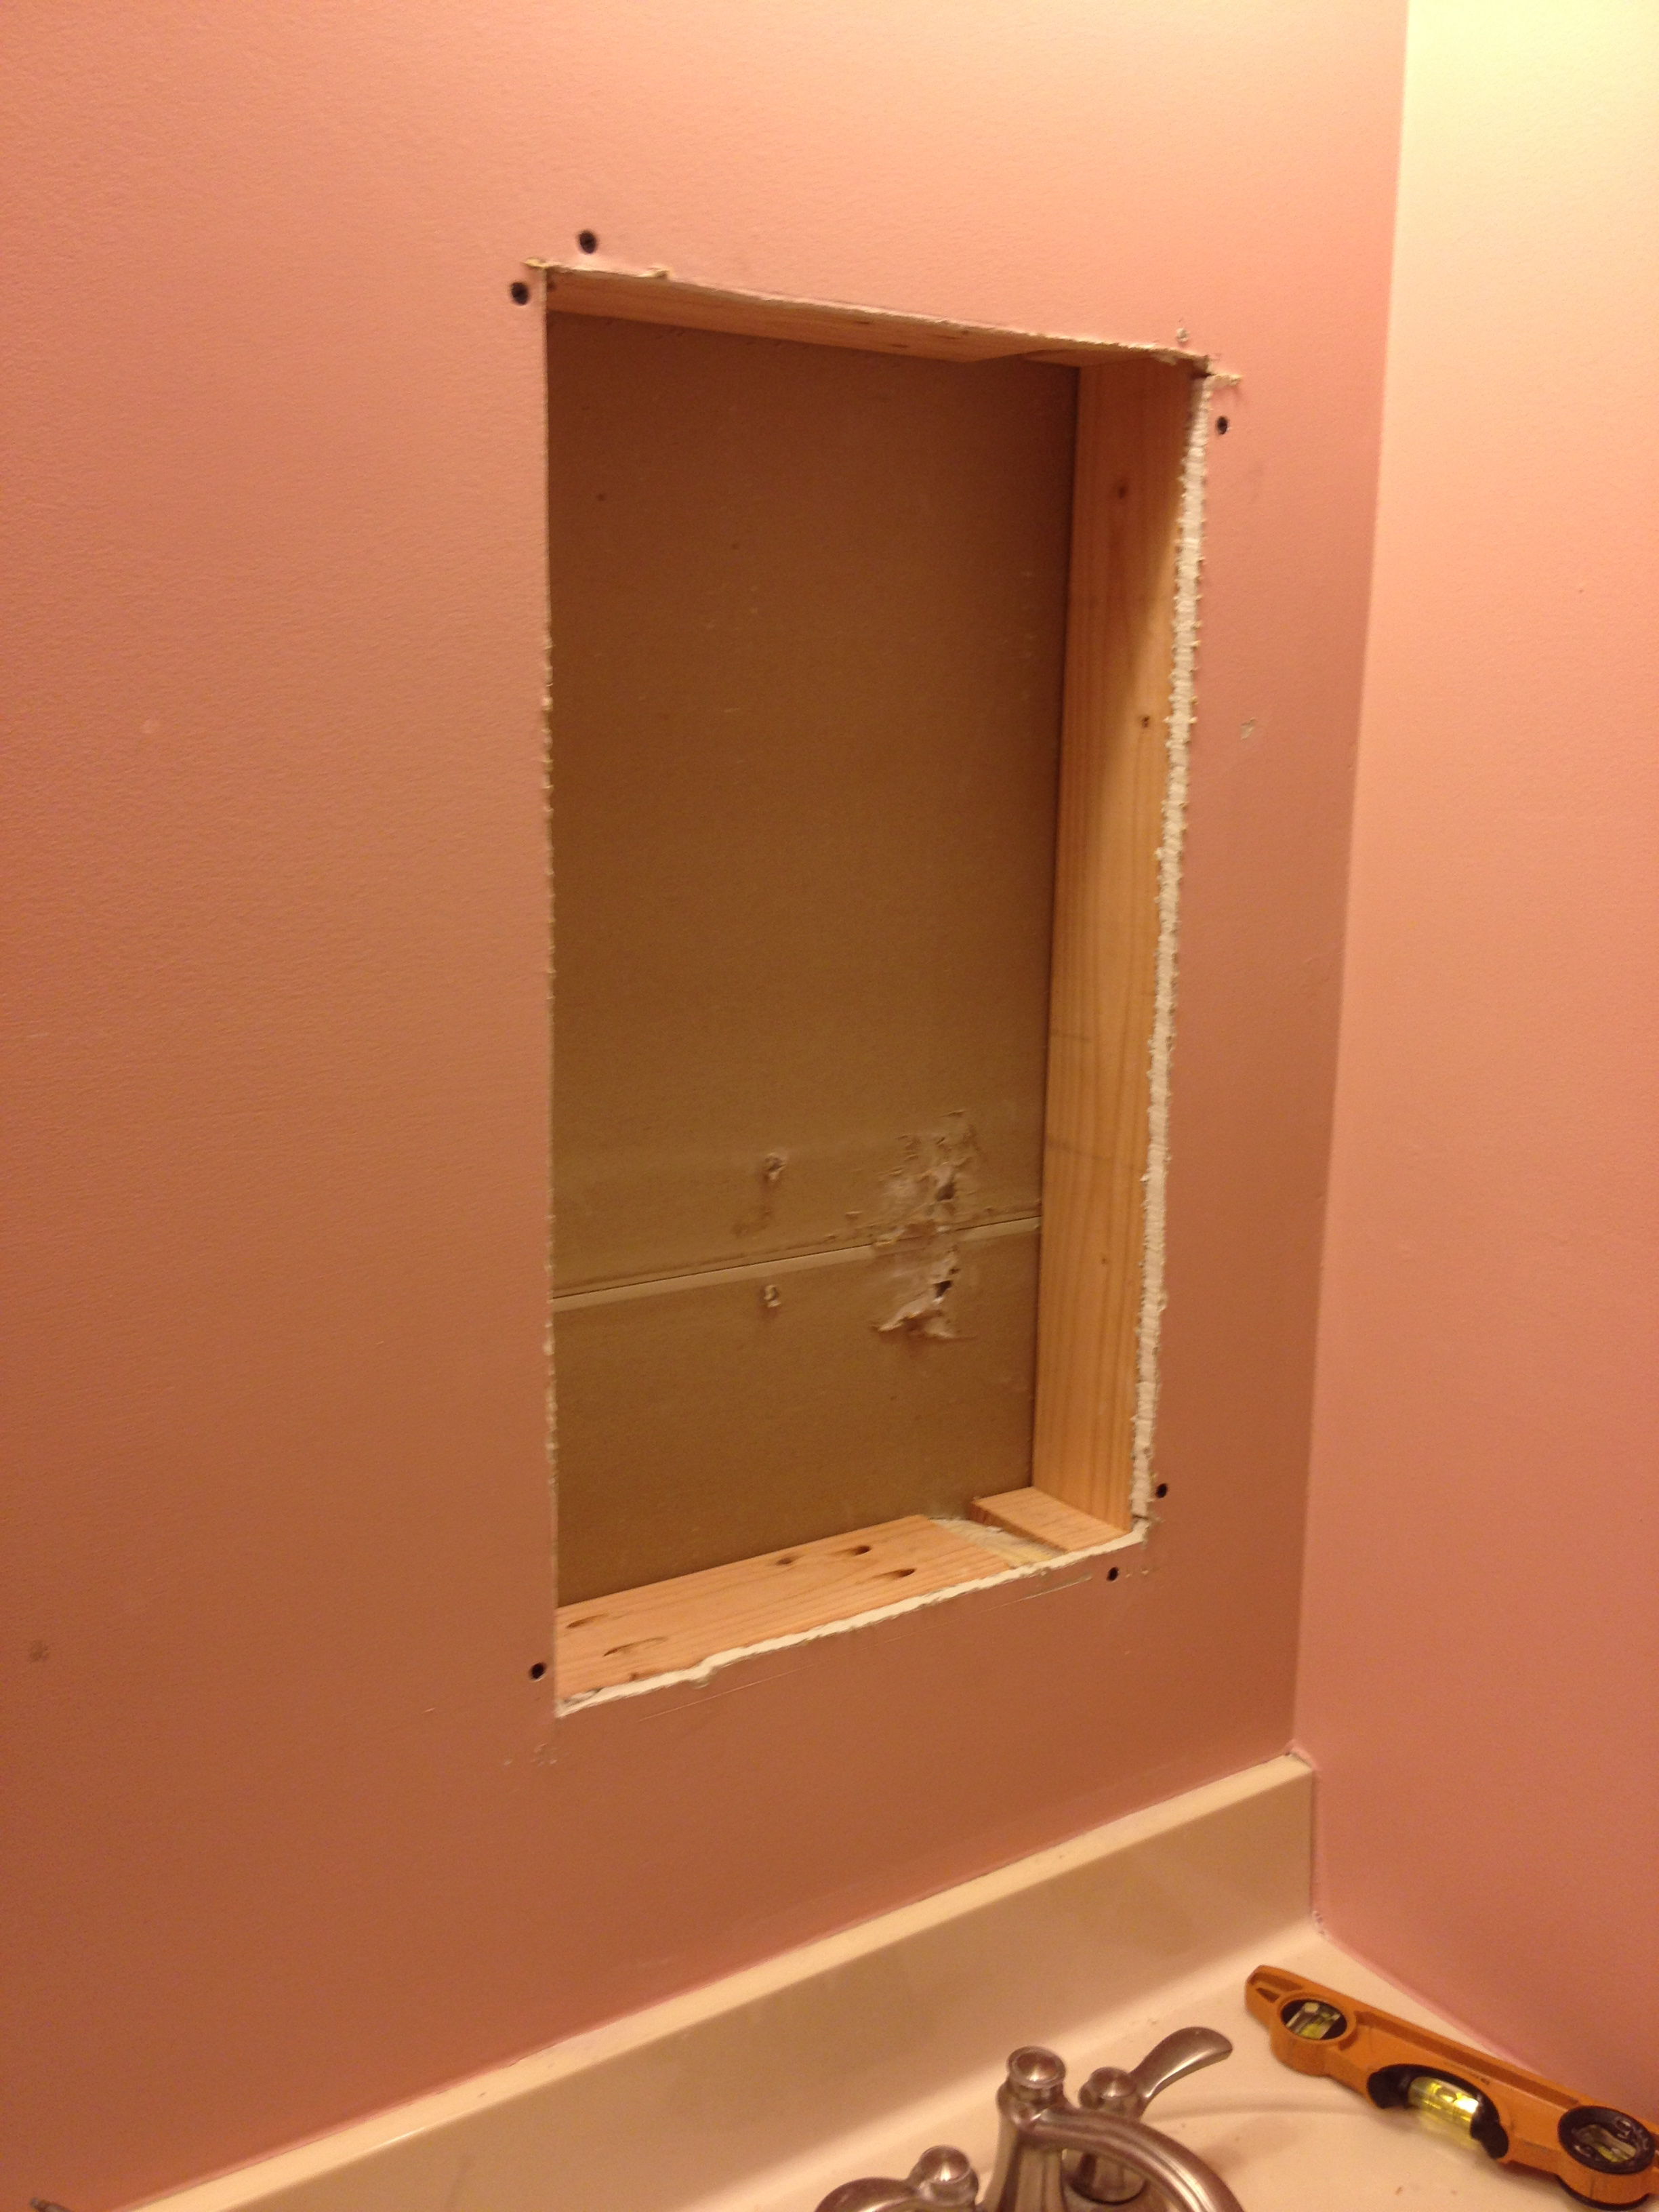 Bathroom Medicine Cabinets West Chester Pa